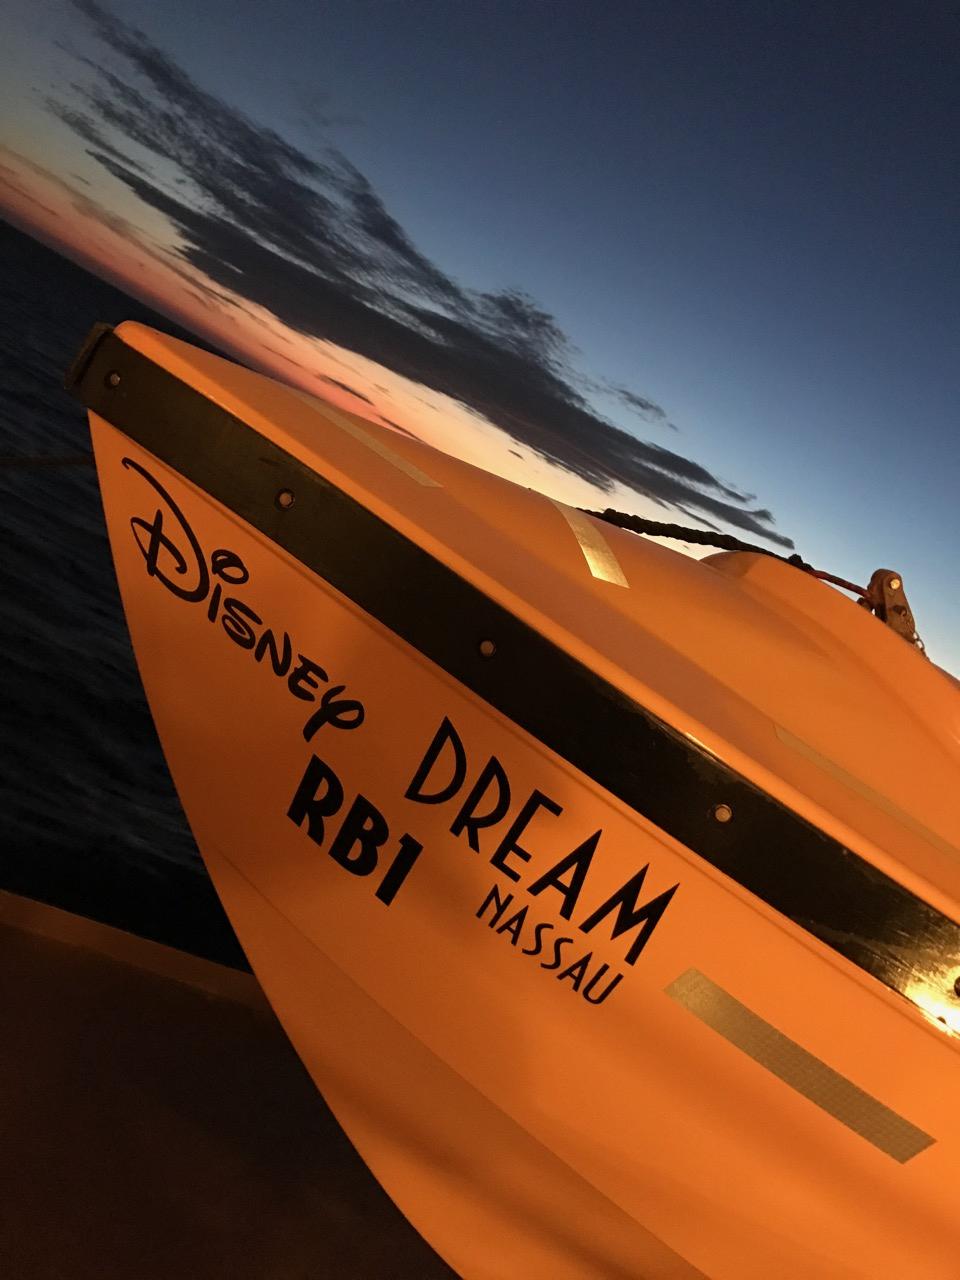 Disney Dream Lifeboat at Sunset